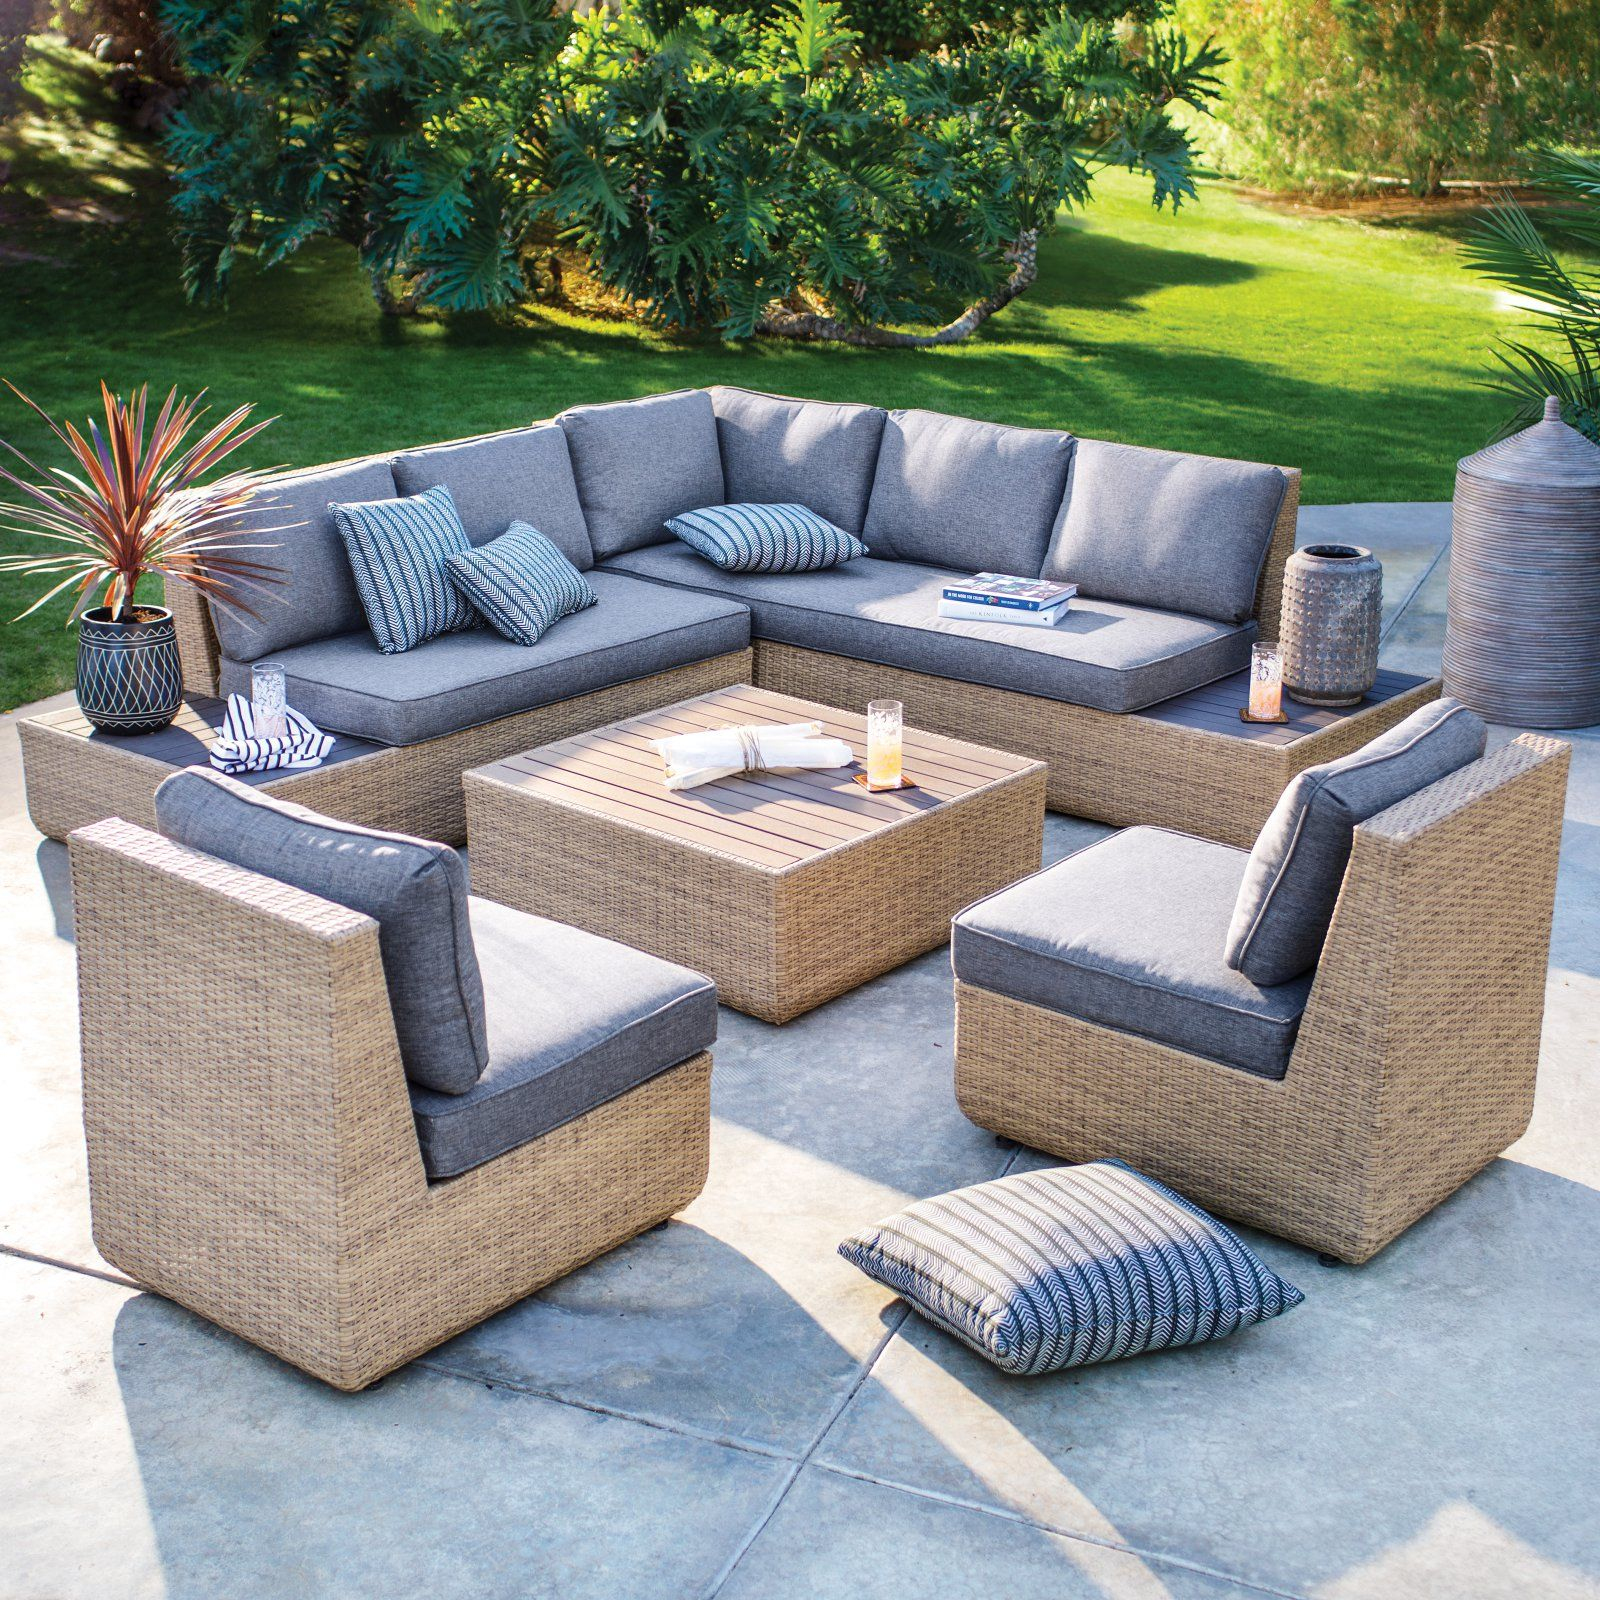 Outdoor Belham Living Luciana Villa All-Weather 5-Piece ... on Outdoor Living Wicker id=51301